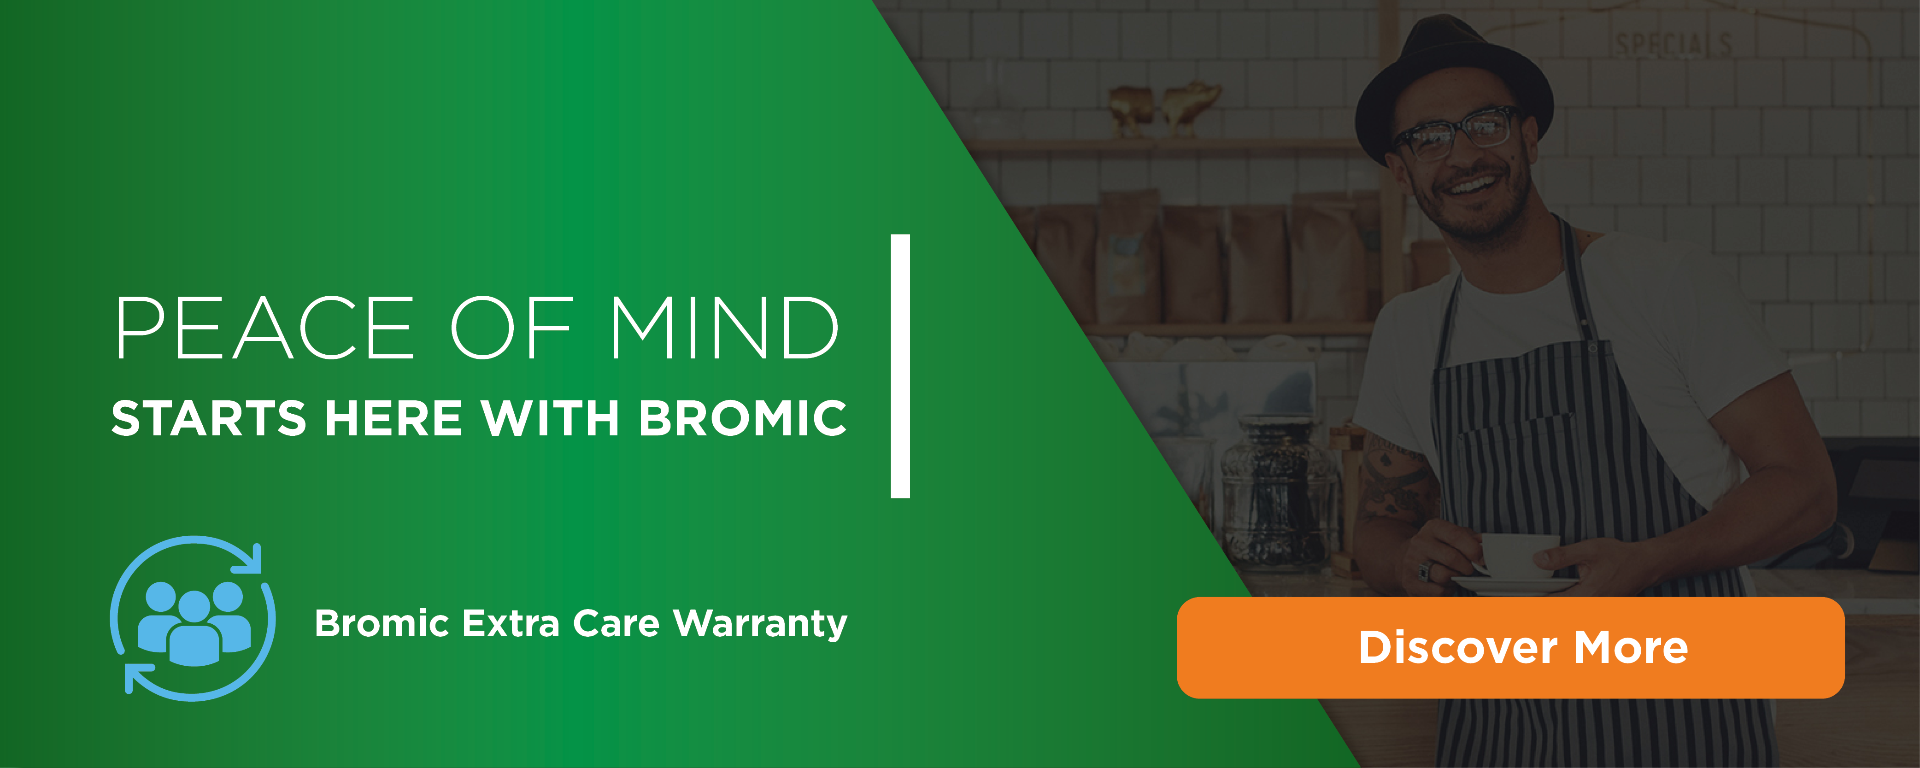 Peace of Mind | Extra Care Warranty